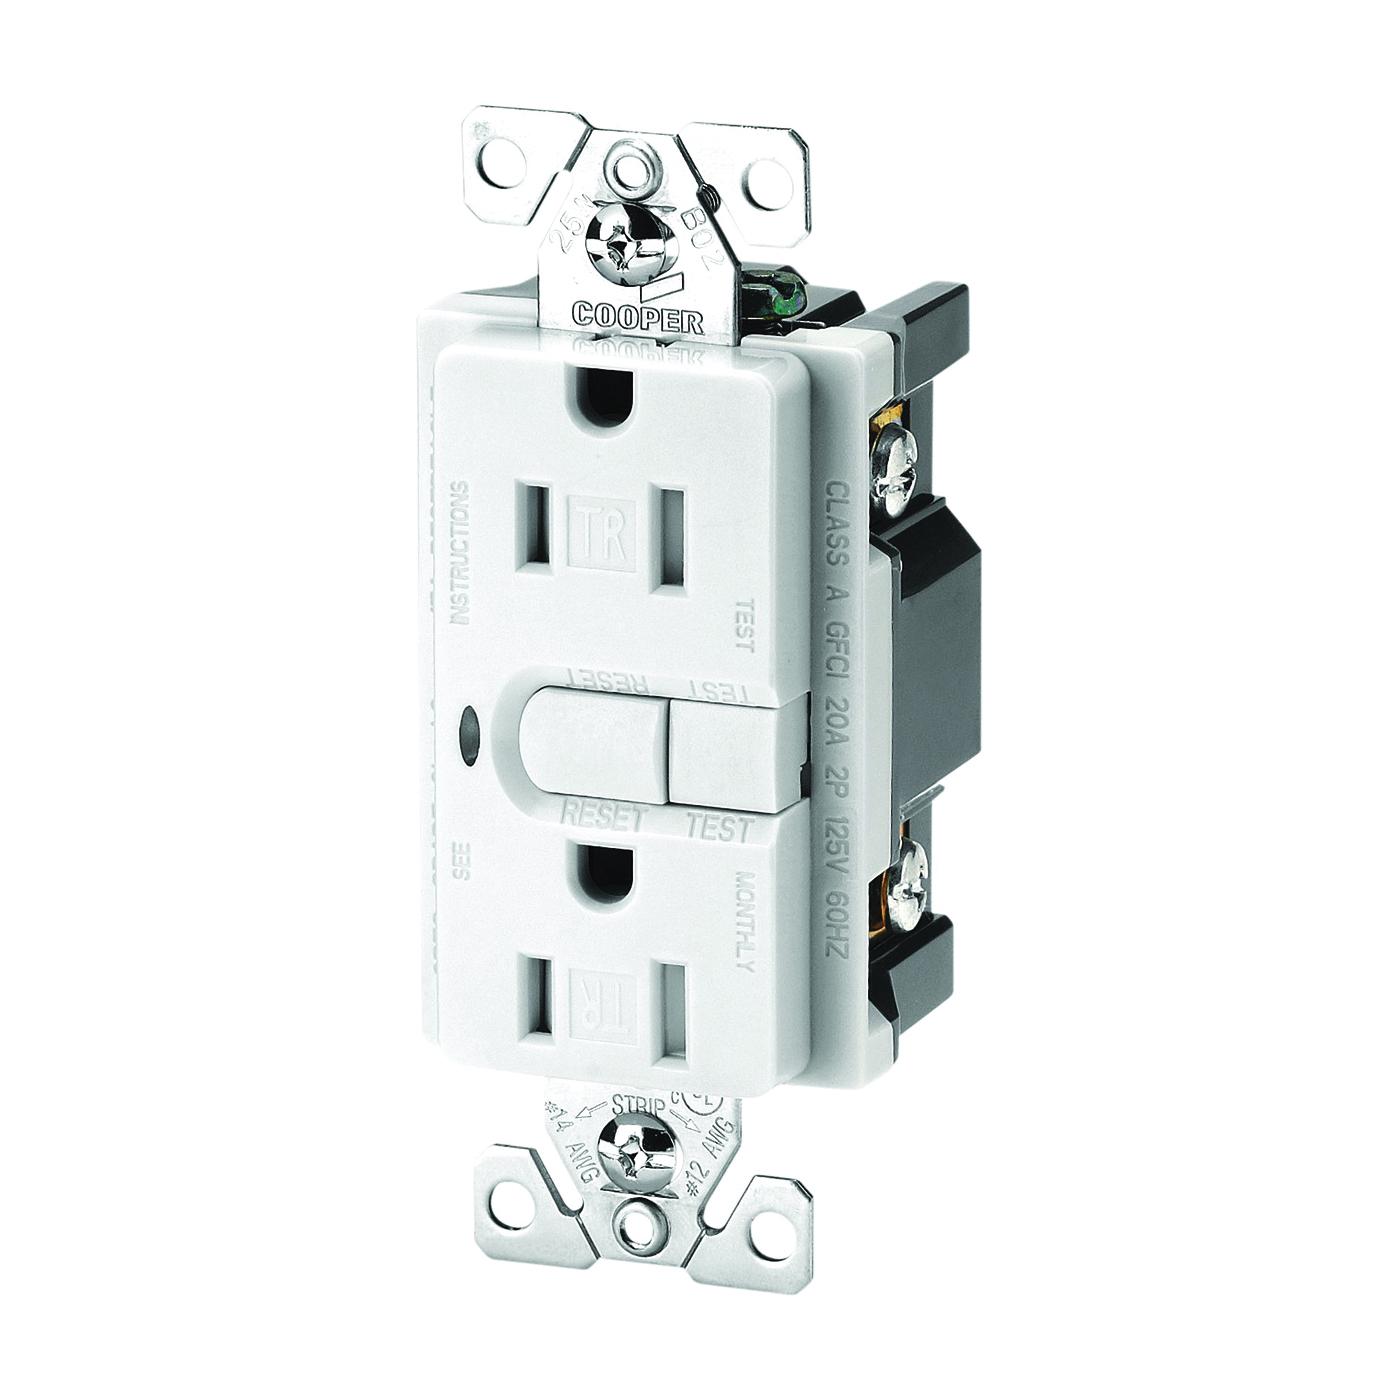 Picture of Eaton Wiring Devices 9566TRSWS Duplex GFCI Receptacle, 2-Pole, 15 A, 125 V, Back, Side Wiring, NEMA: 5-15R, White